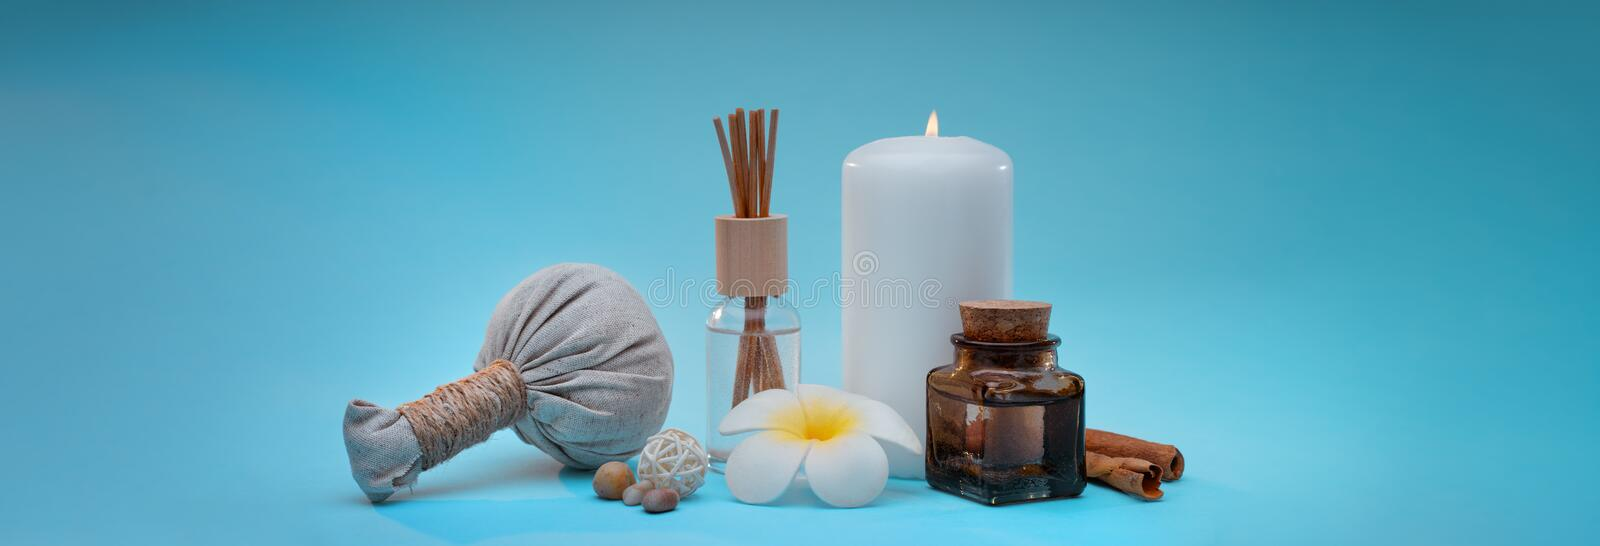 Beautiful and concise spa composition on turquoise background. Beautiful and concise spa composition with a candle, frangipani flower, oil bottle, herbal ball royalty free stock image